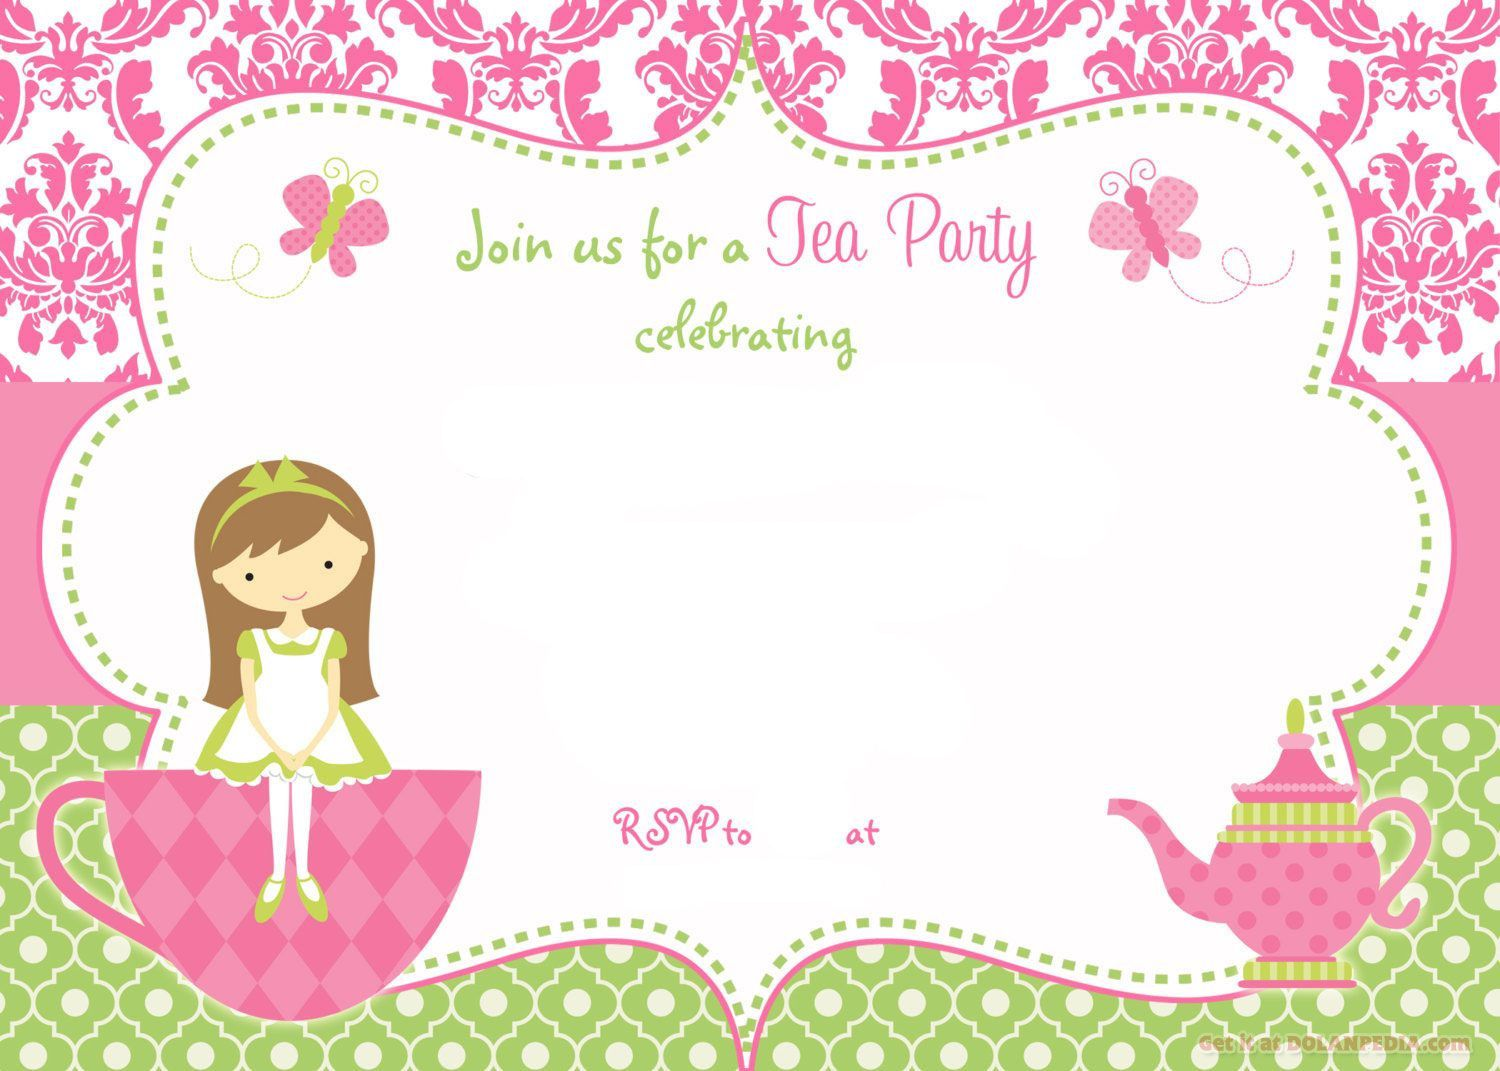 002 Shocking Tea Party Invitation Template High Def  Wording Vintage Free SampleFull